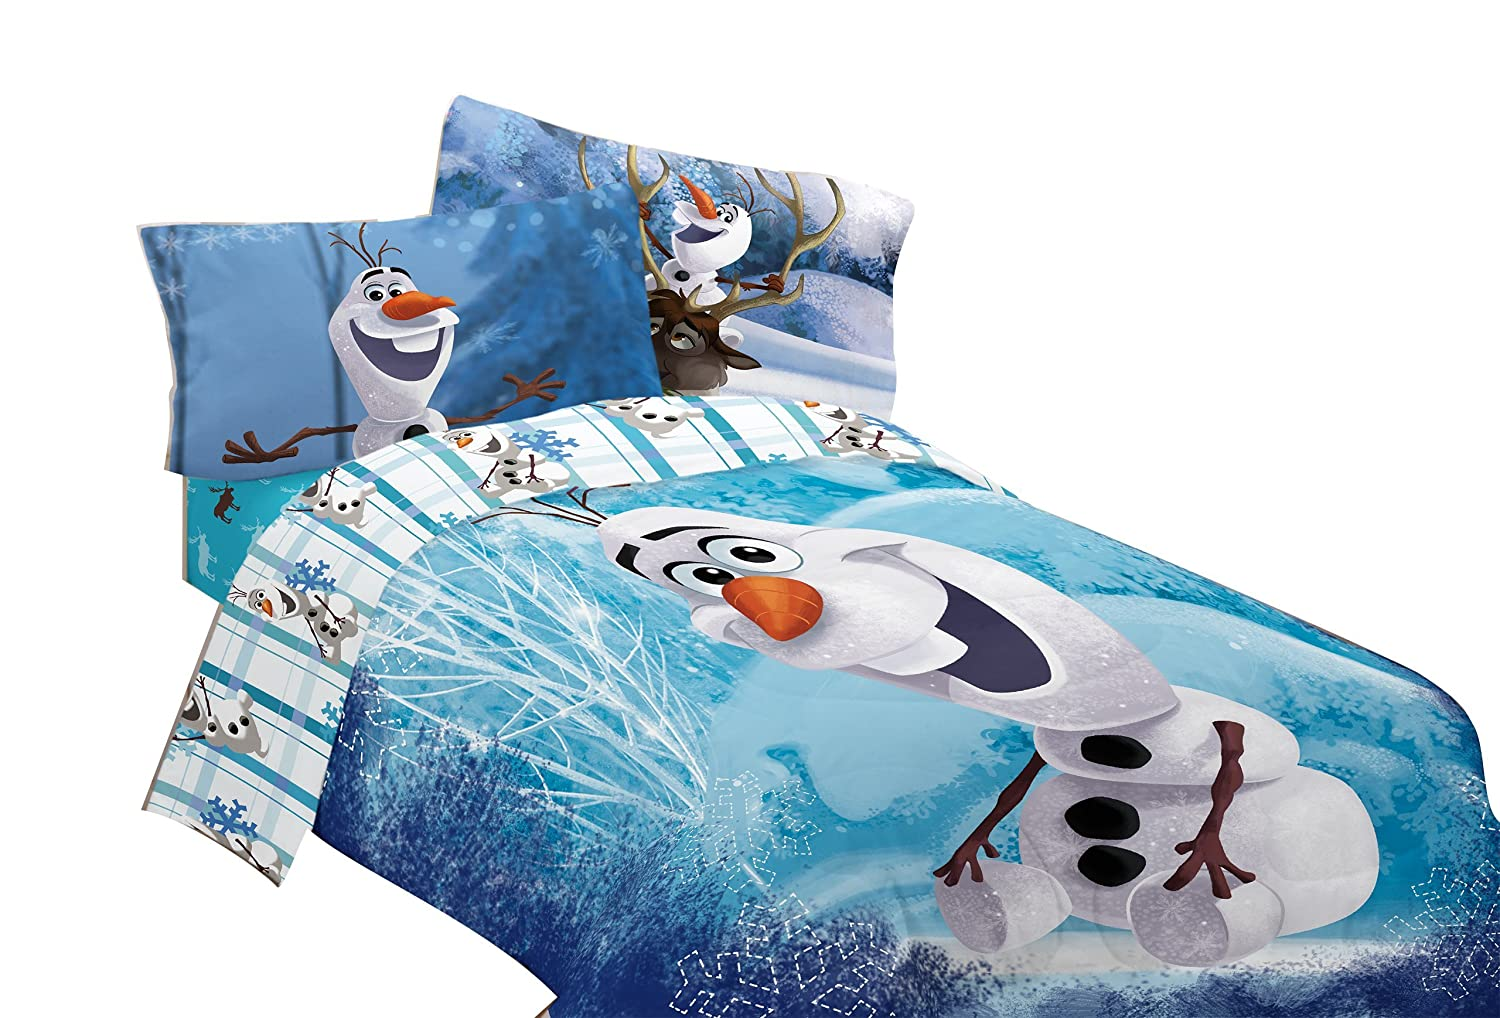 Amazon.com: Disney Frozen Olaf Build a Snowman 72 by 86-Inch Microfiber  Comforter, Twin/Full: Home & Kitchen - Amazon.com: Disney Frozen Olaf Build A Snowman 72 By 86-Inch